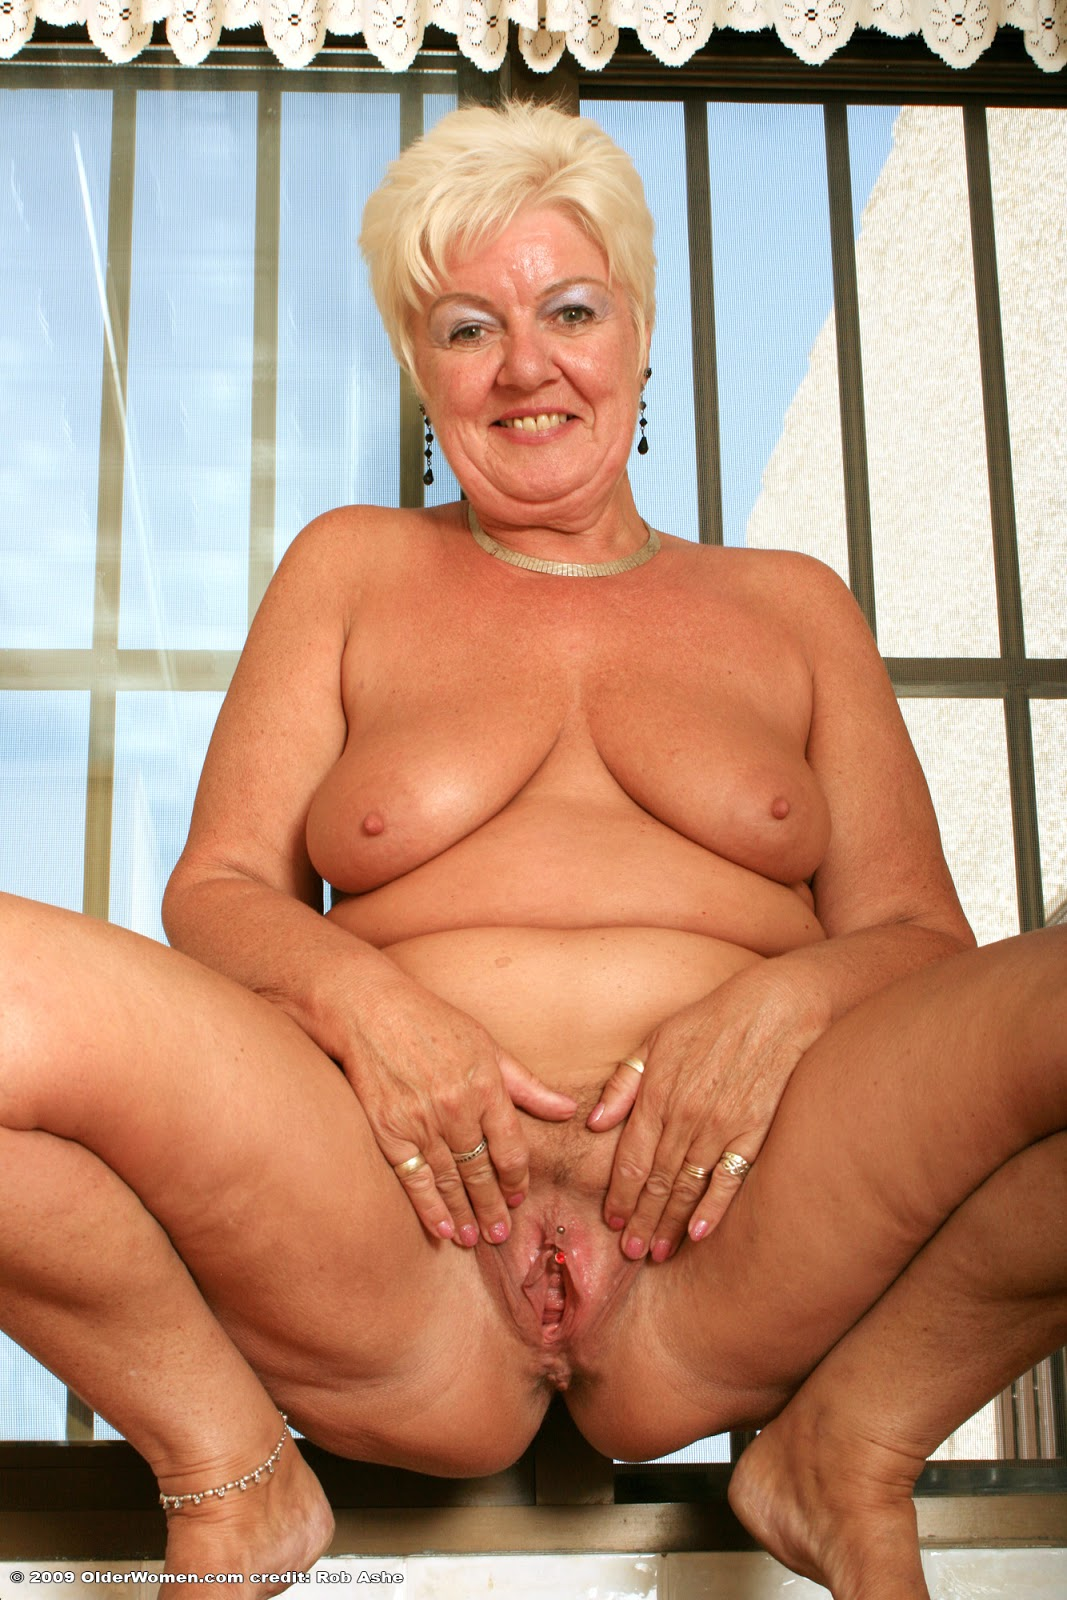 67 year old granny gerri playing with her pussy 9